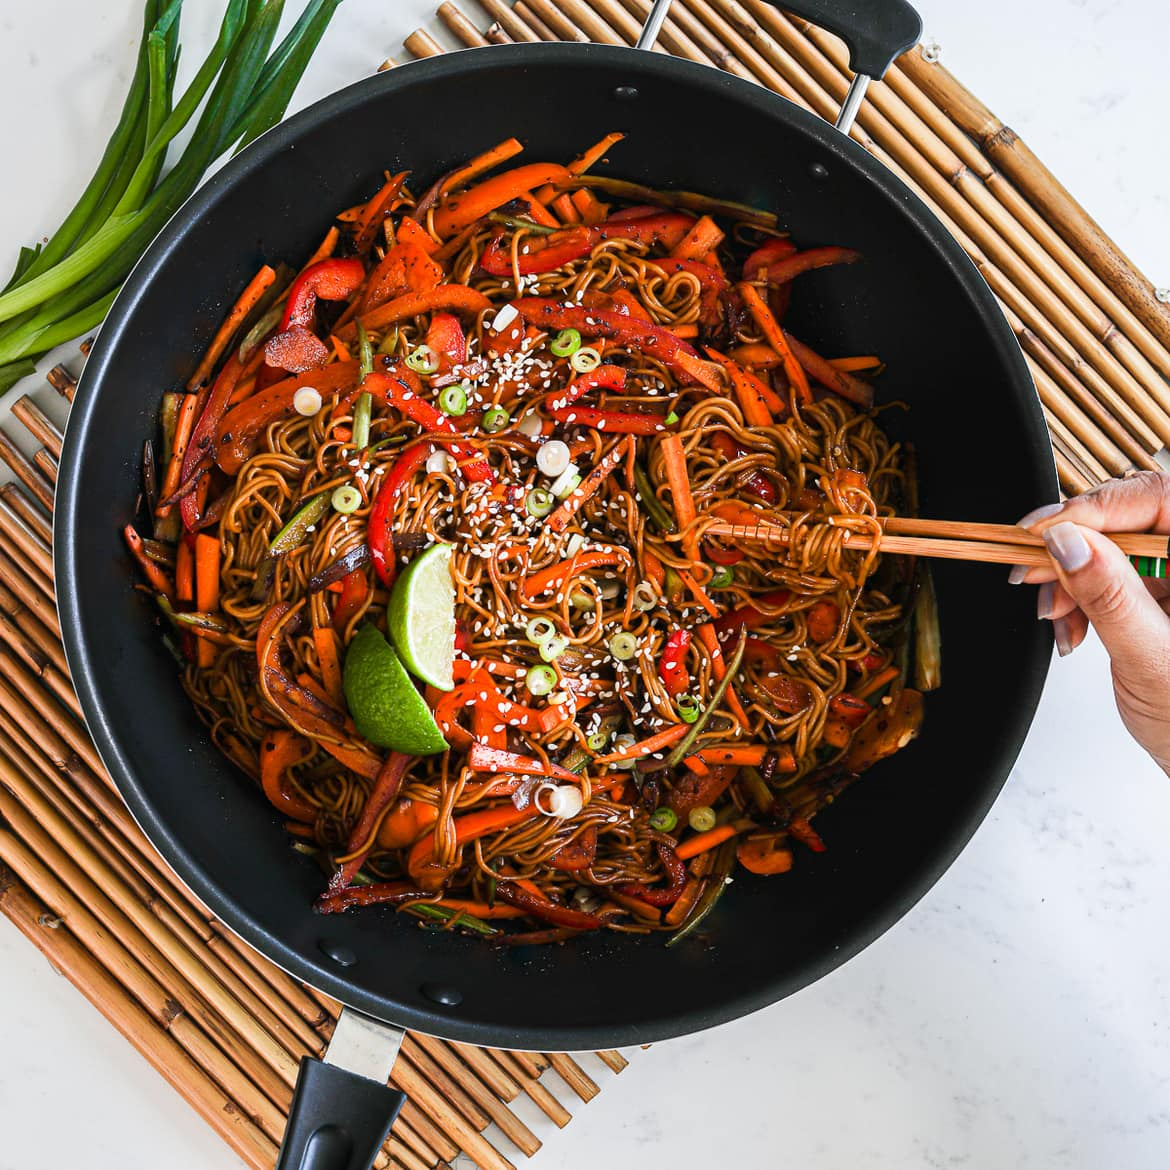 Spicy Veg Noodles Recipe In 20 Minutes | Desi~licious RD